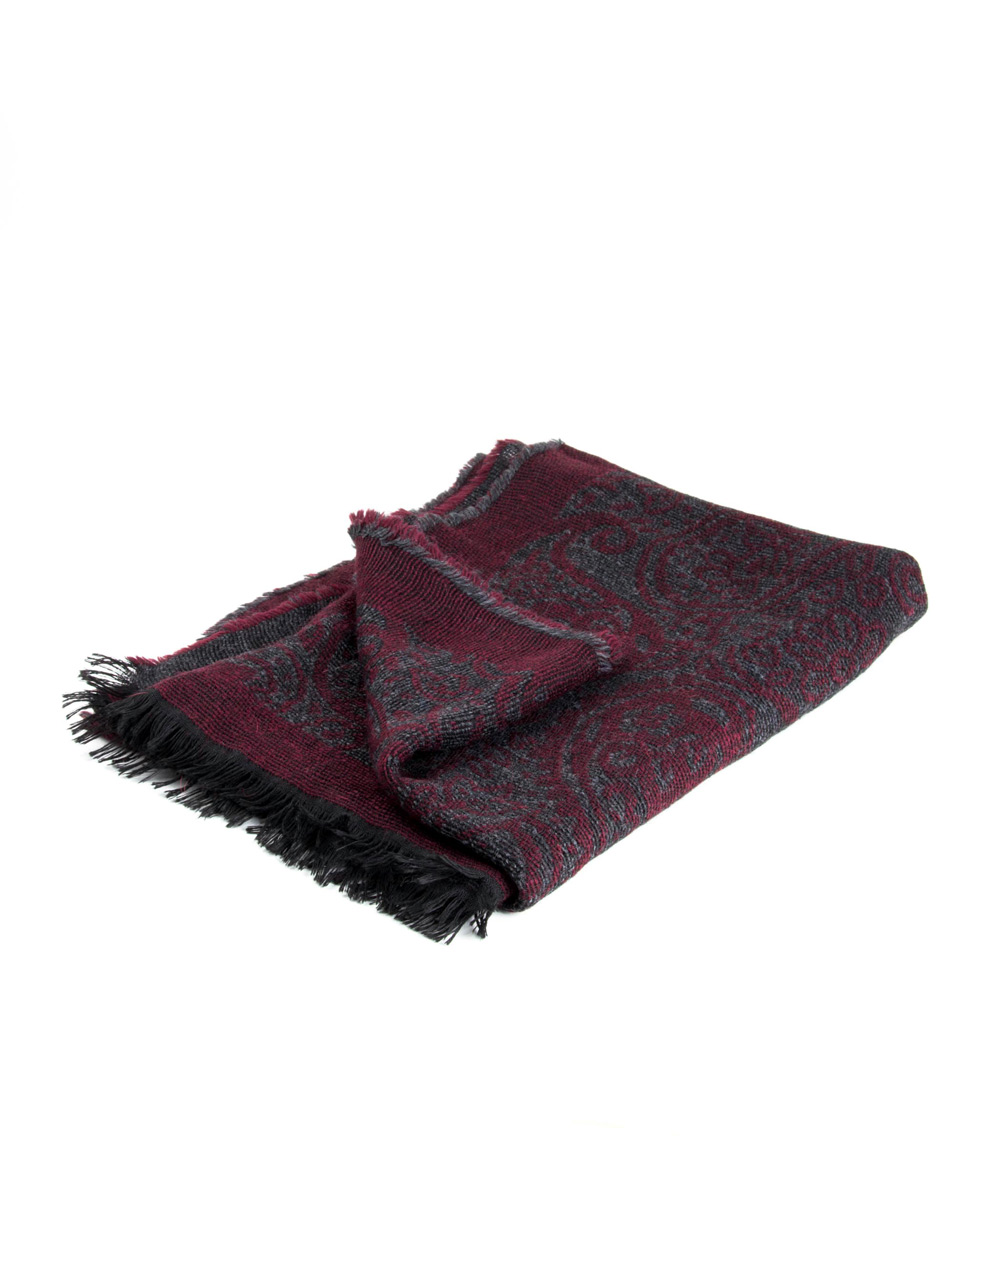 Bordo Grey fantasy foulard - Backside